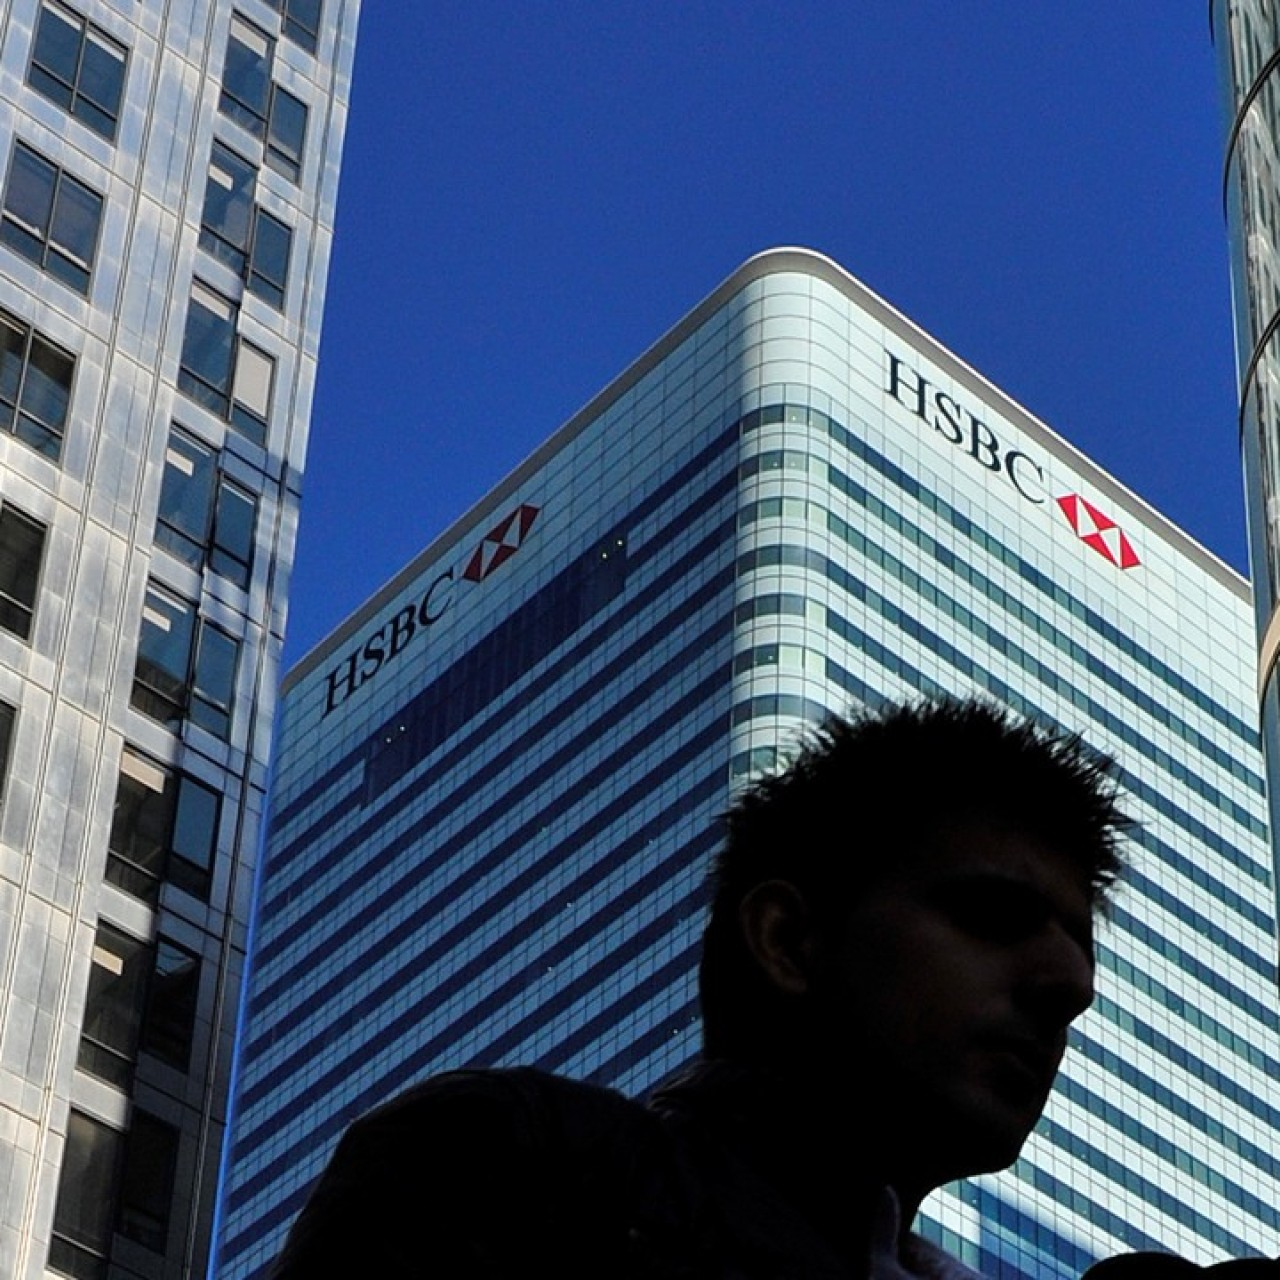 HSBC revisits plan to list shares in China as London-Shanghai stock